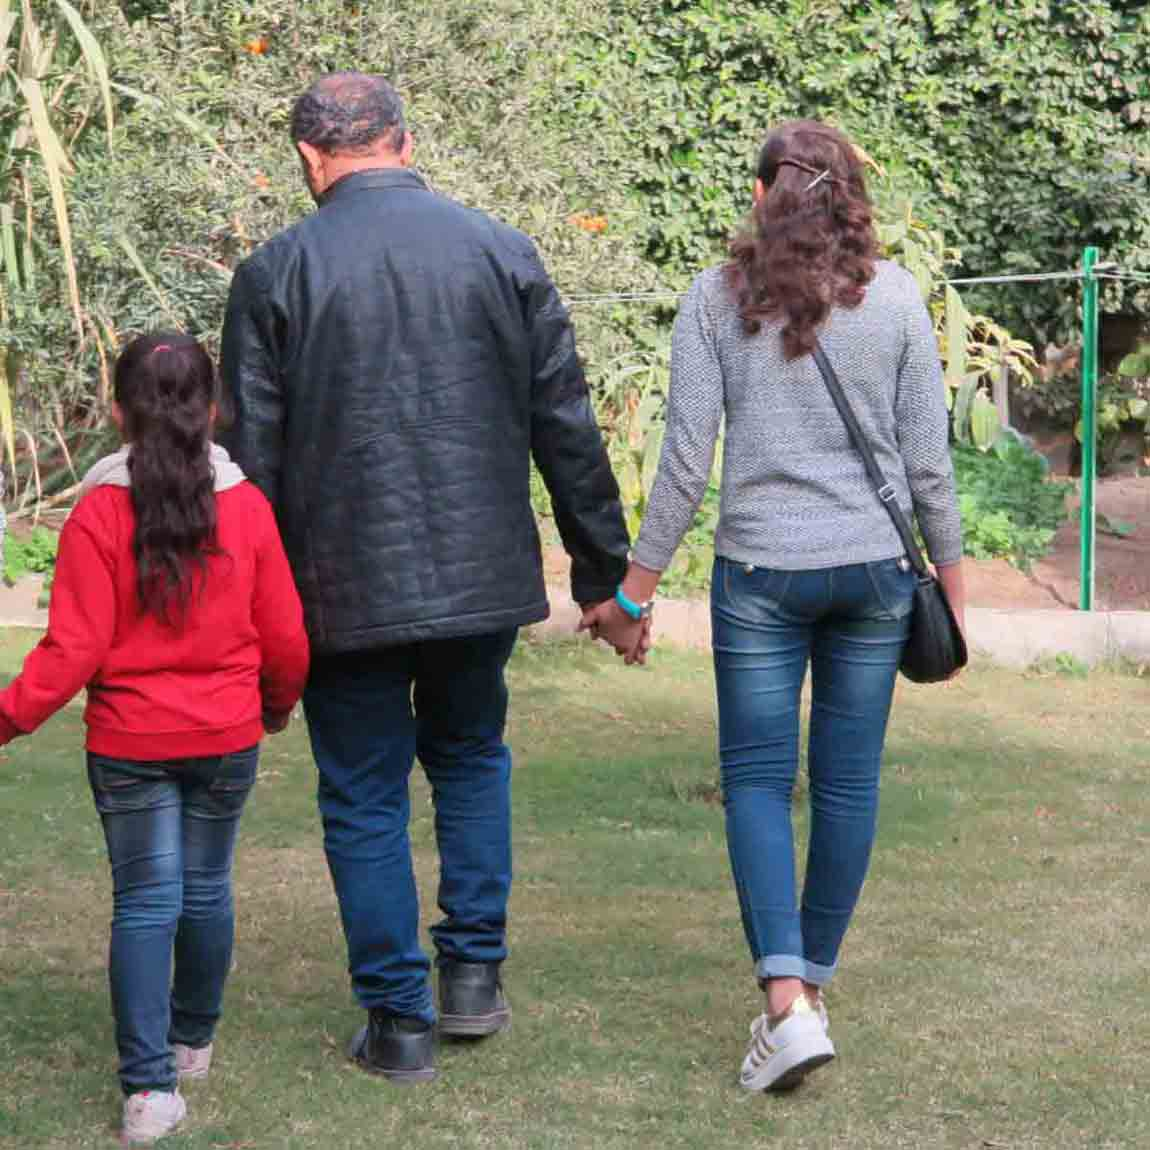 EGYPT | OCT. 30, 2020 — Convert Couple Severely Tested